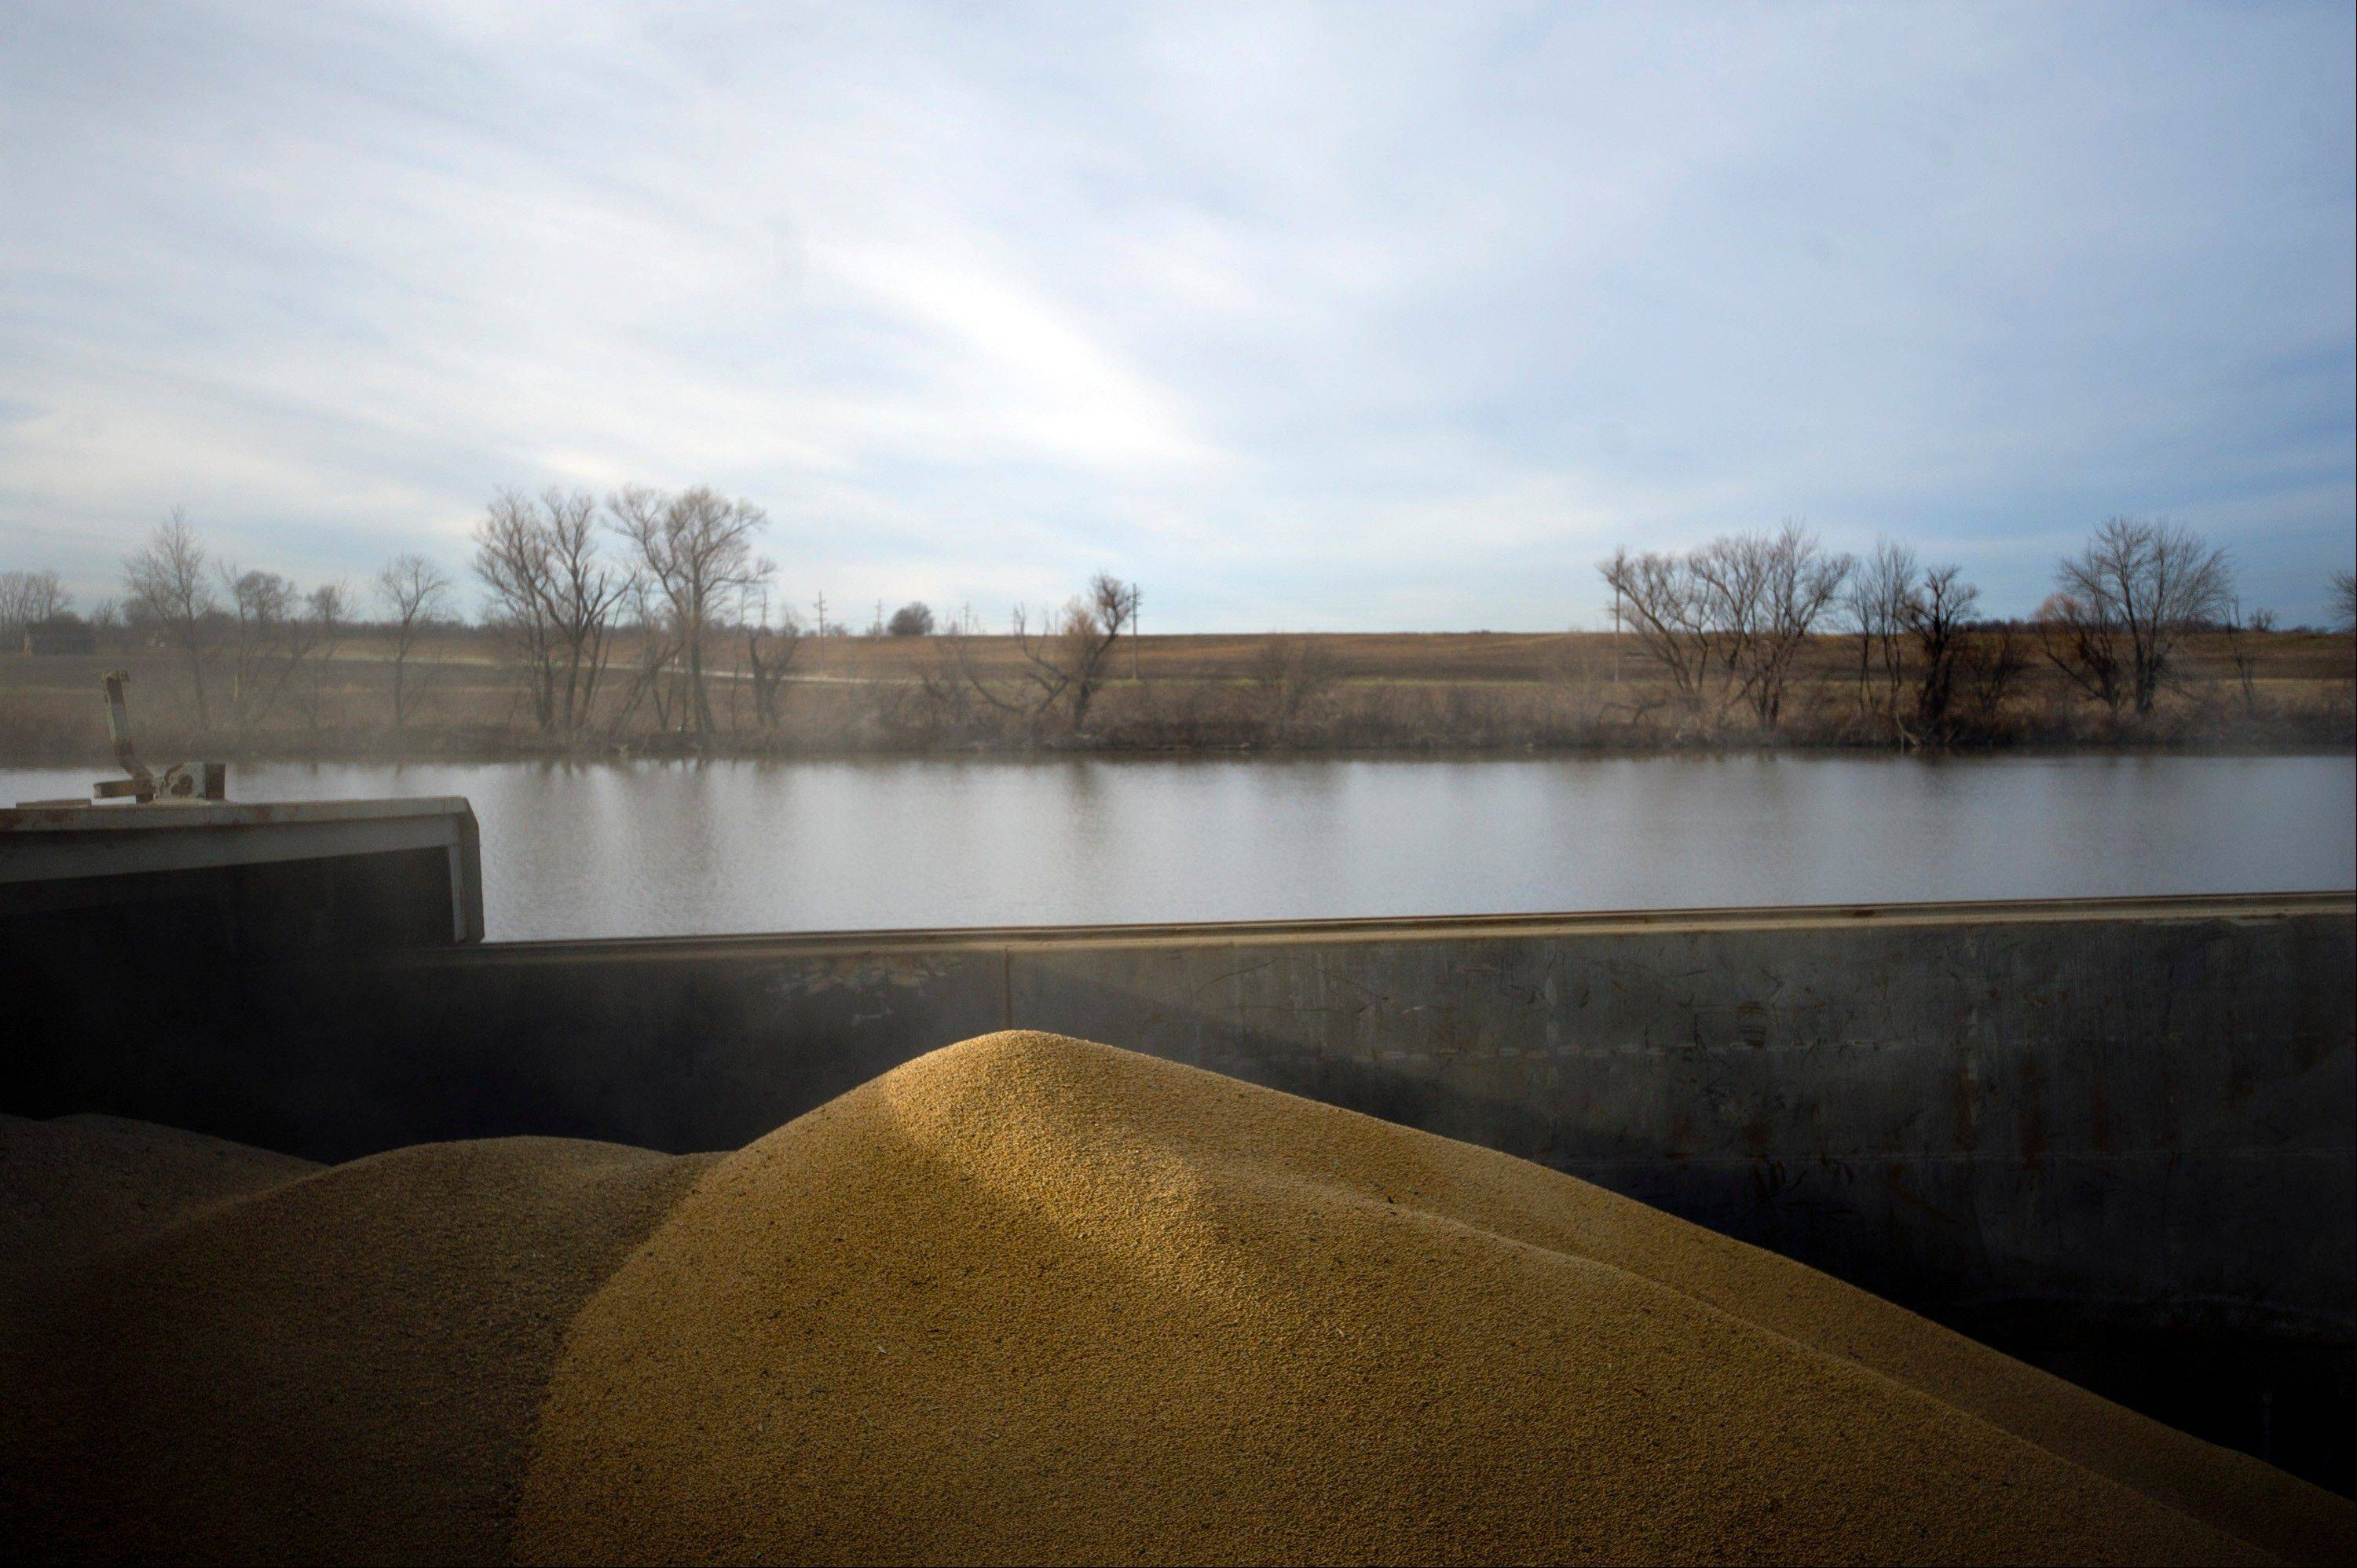 Soybeans sit in a barge on the Kaskaskia River, a tributary of the Mississippi River, at Gateway FS in Evansville, Ill., on Wednesday. U.S. farmers, facing aftershocks of the worst drought in 50 years, are improvising alternative plans for corn, soybeans and other grains that won�t be moving to world markets as the Mississippi River dries up.